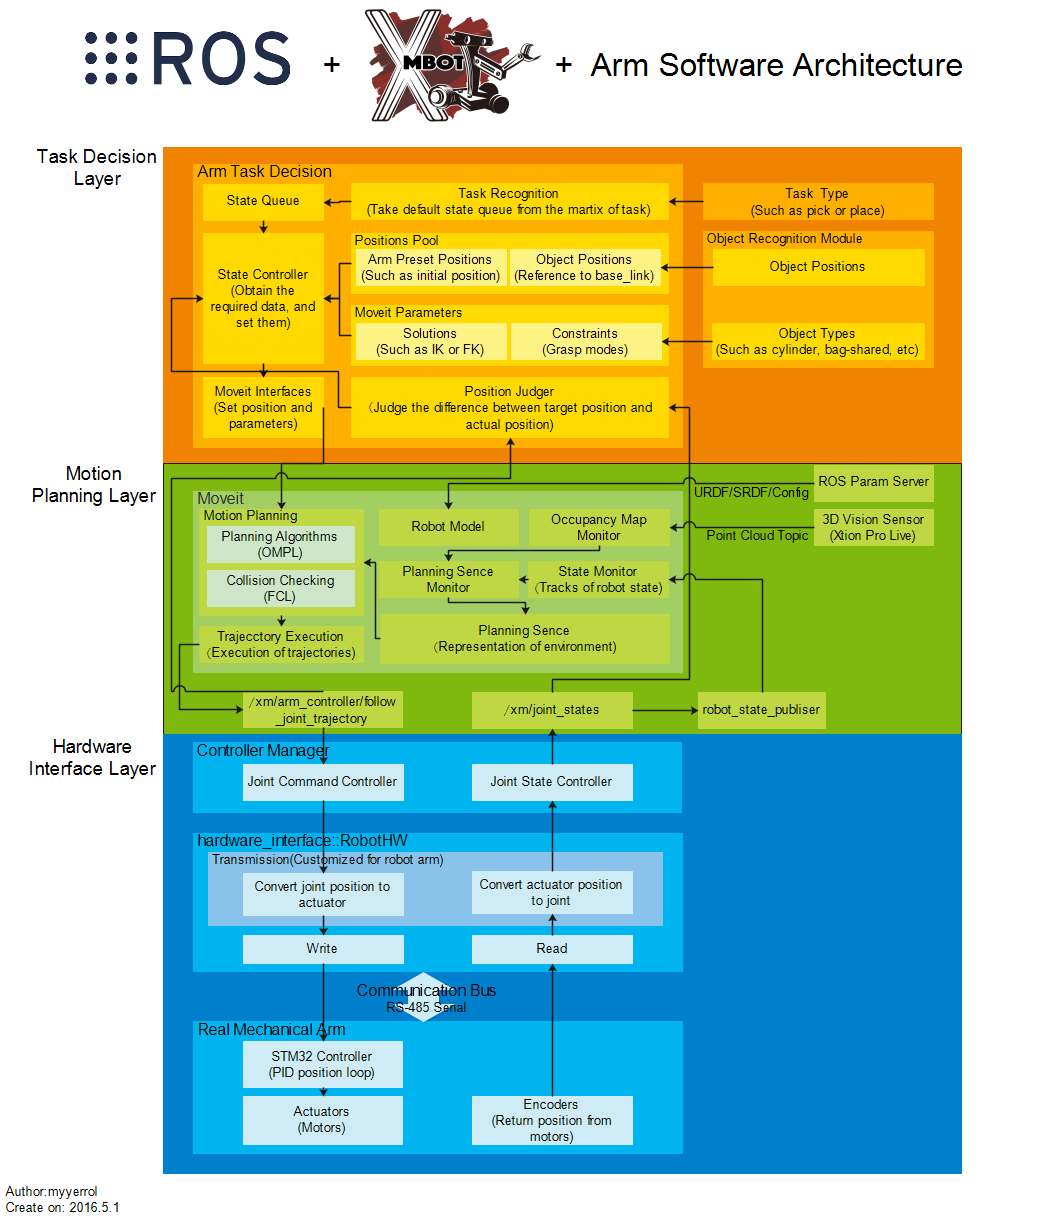 xm_arm_software_architecture